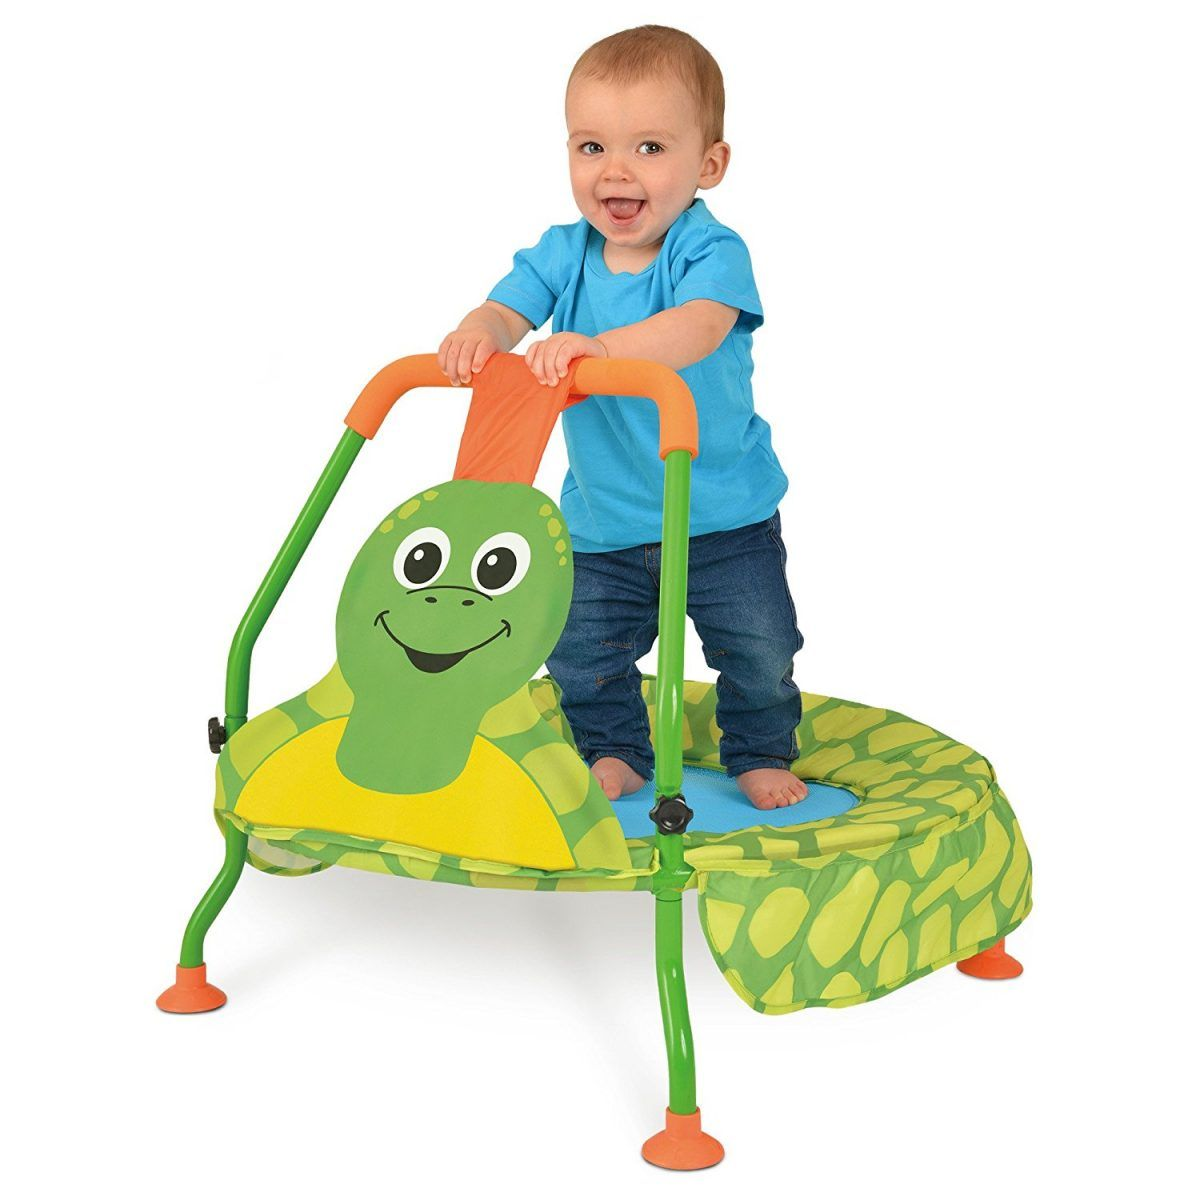 Best Indoor Energy Burning Toys For Active Kids Toddler